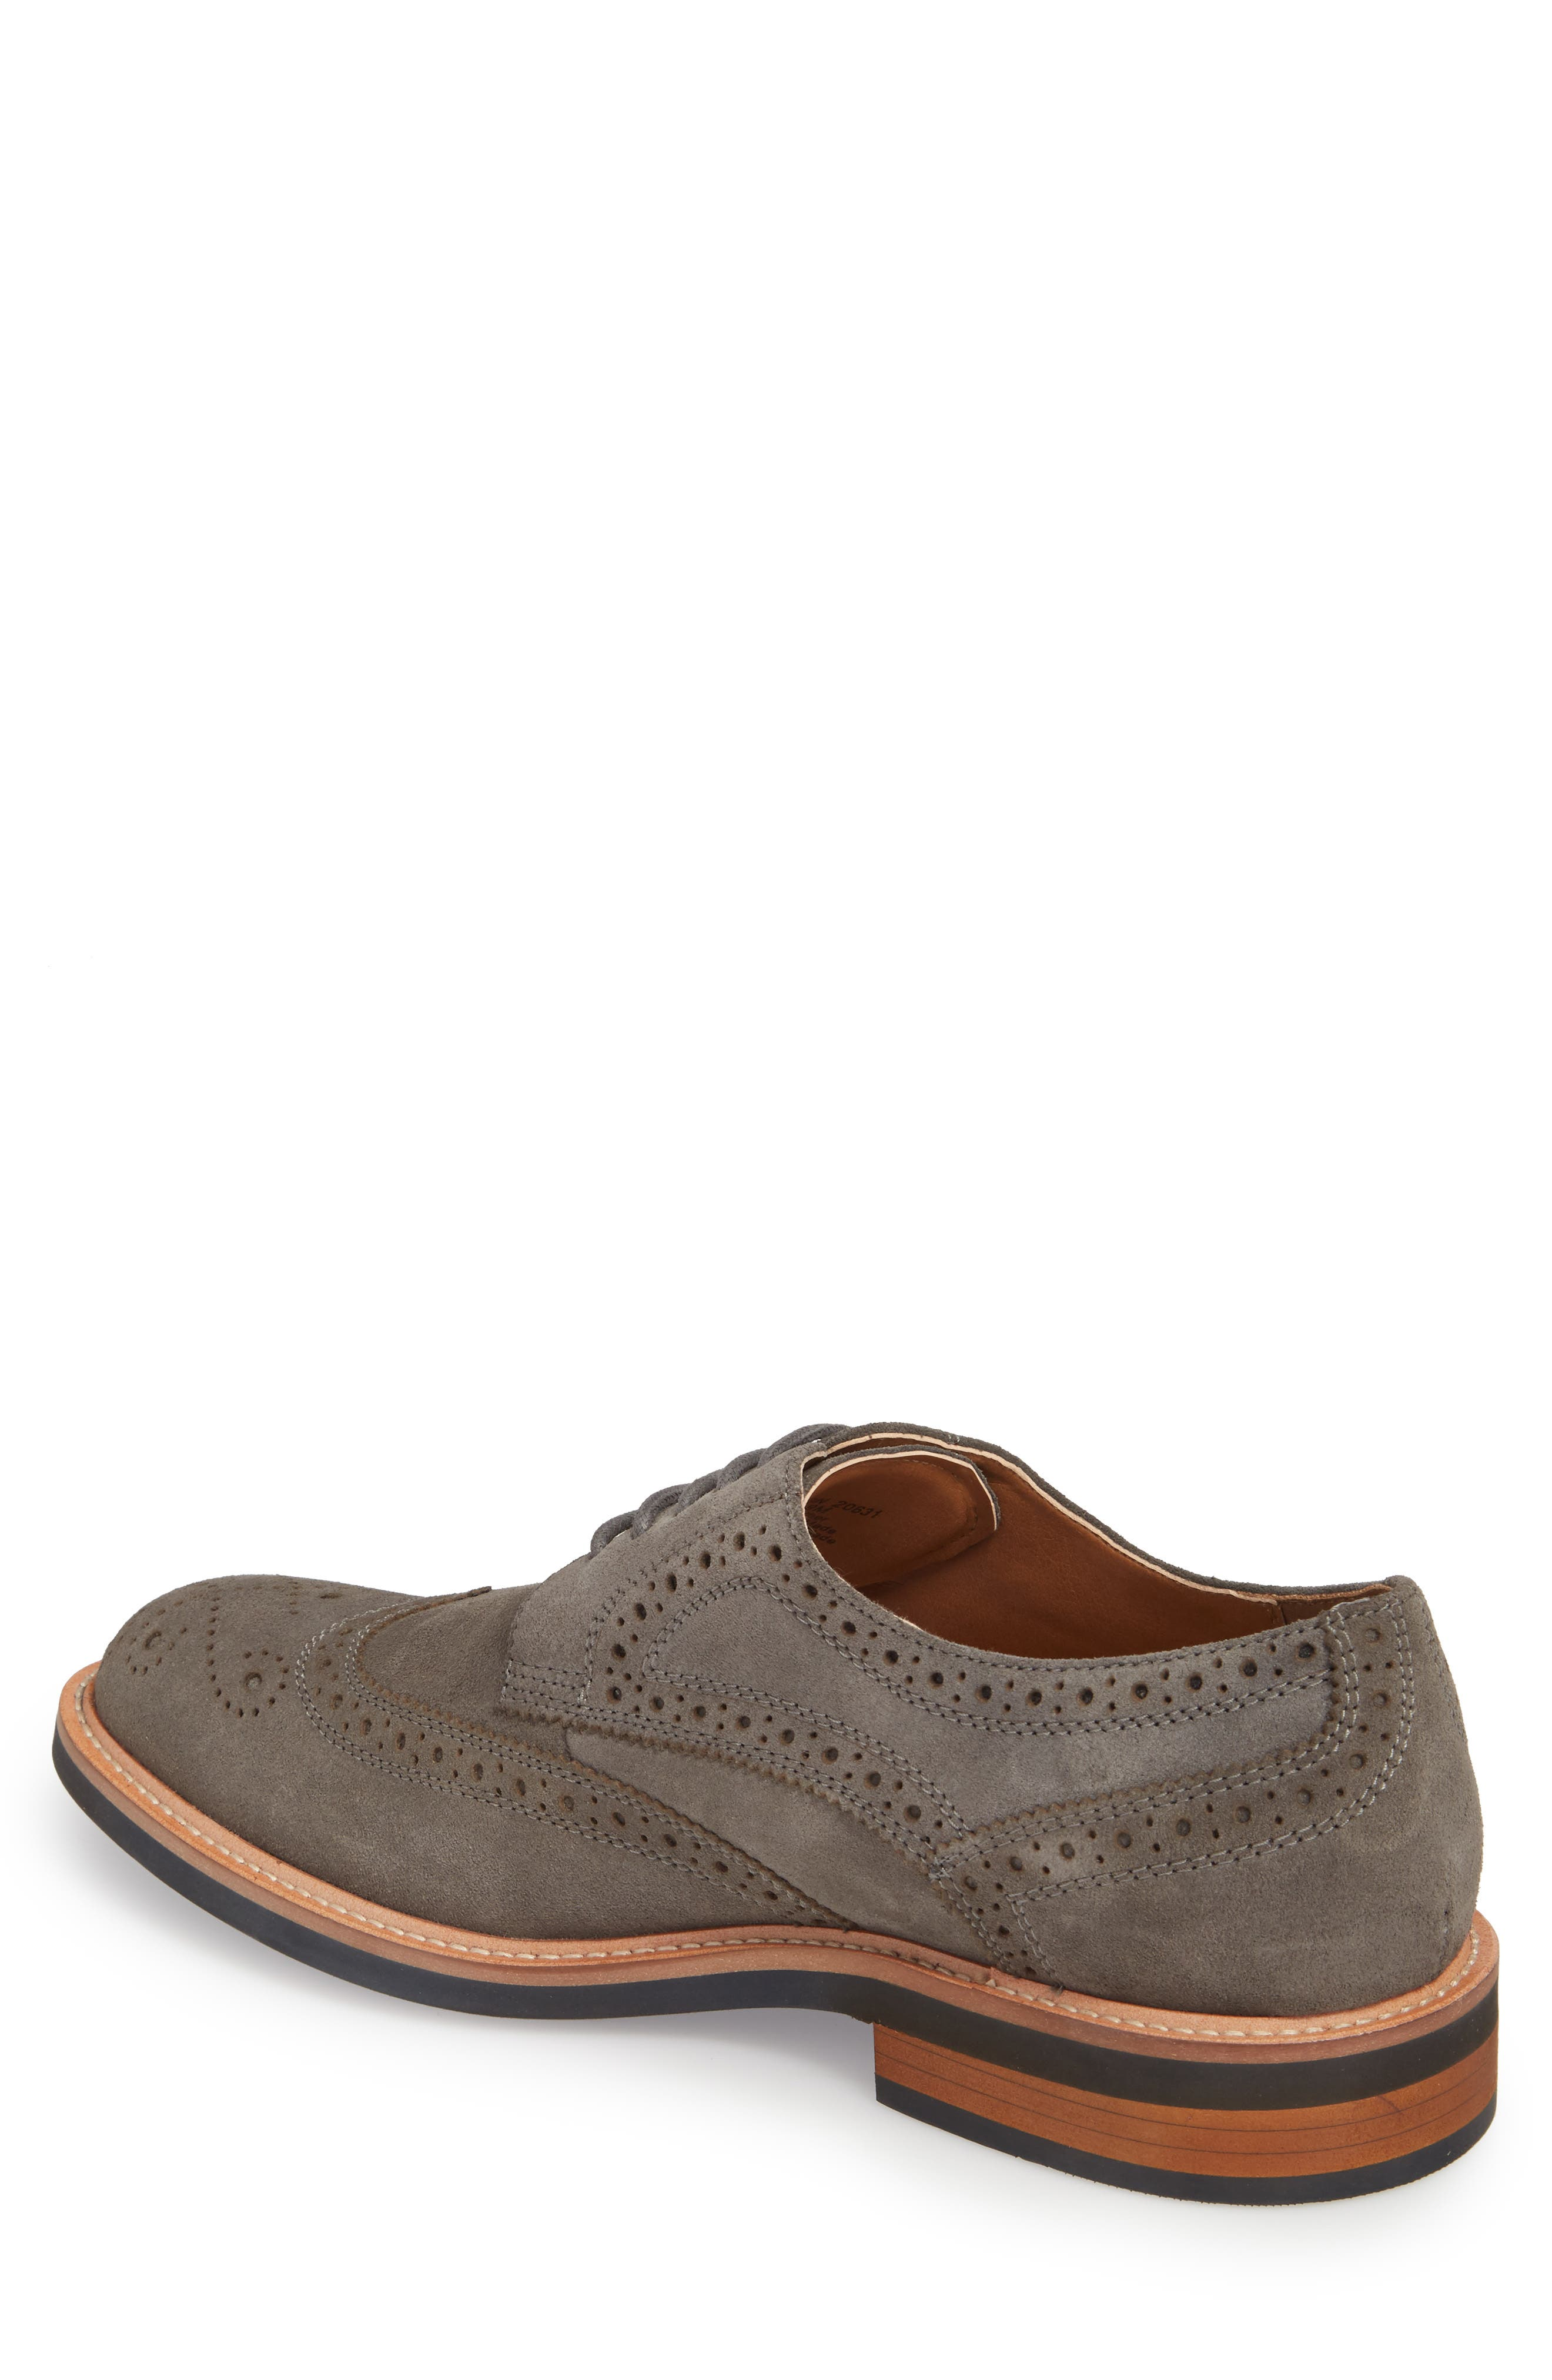 Kenneth Cole Reaction Wingtip,                             Alternate thumbnail 2, color,                             Grey